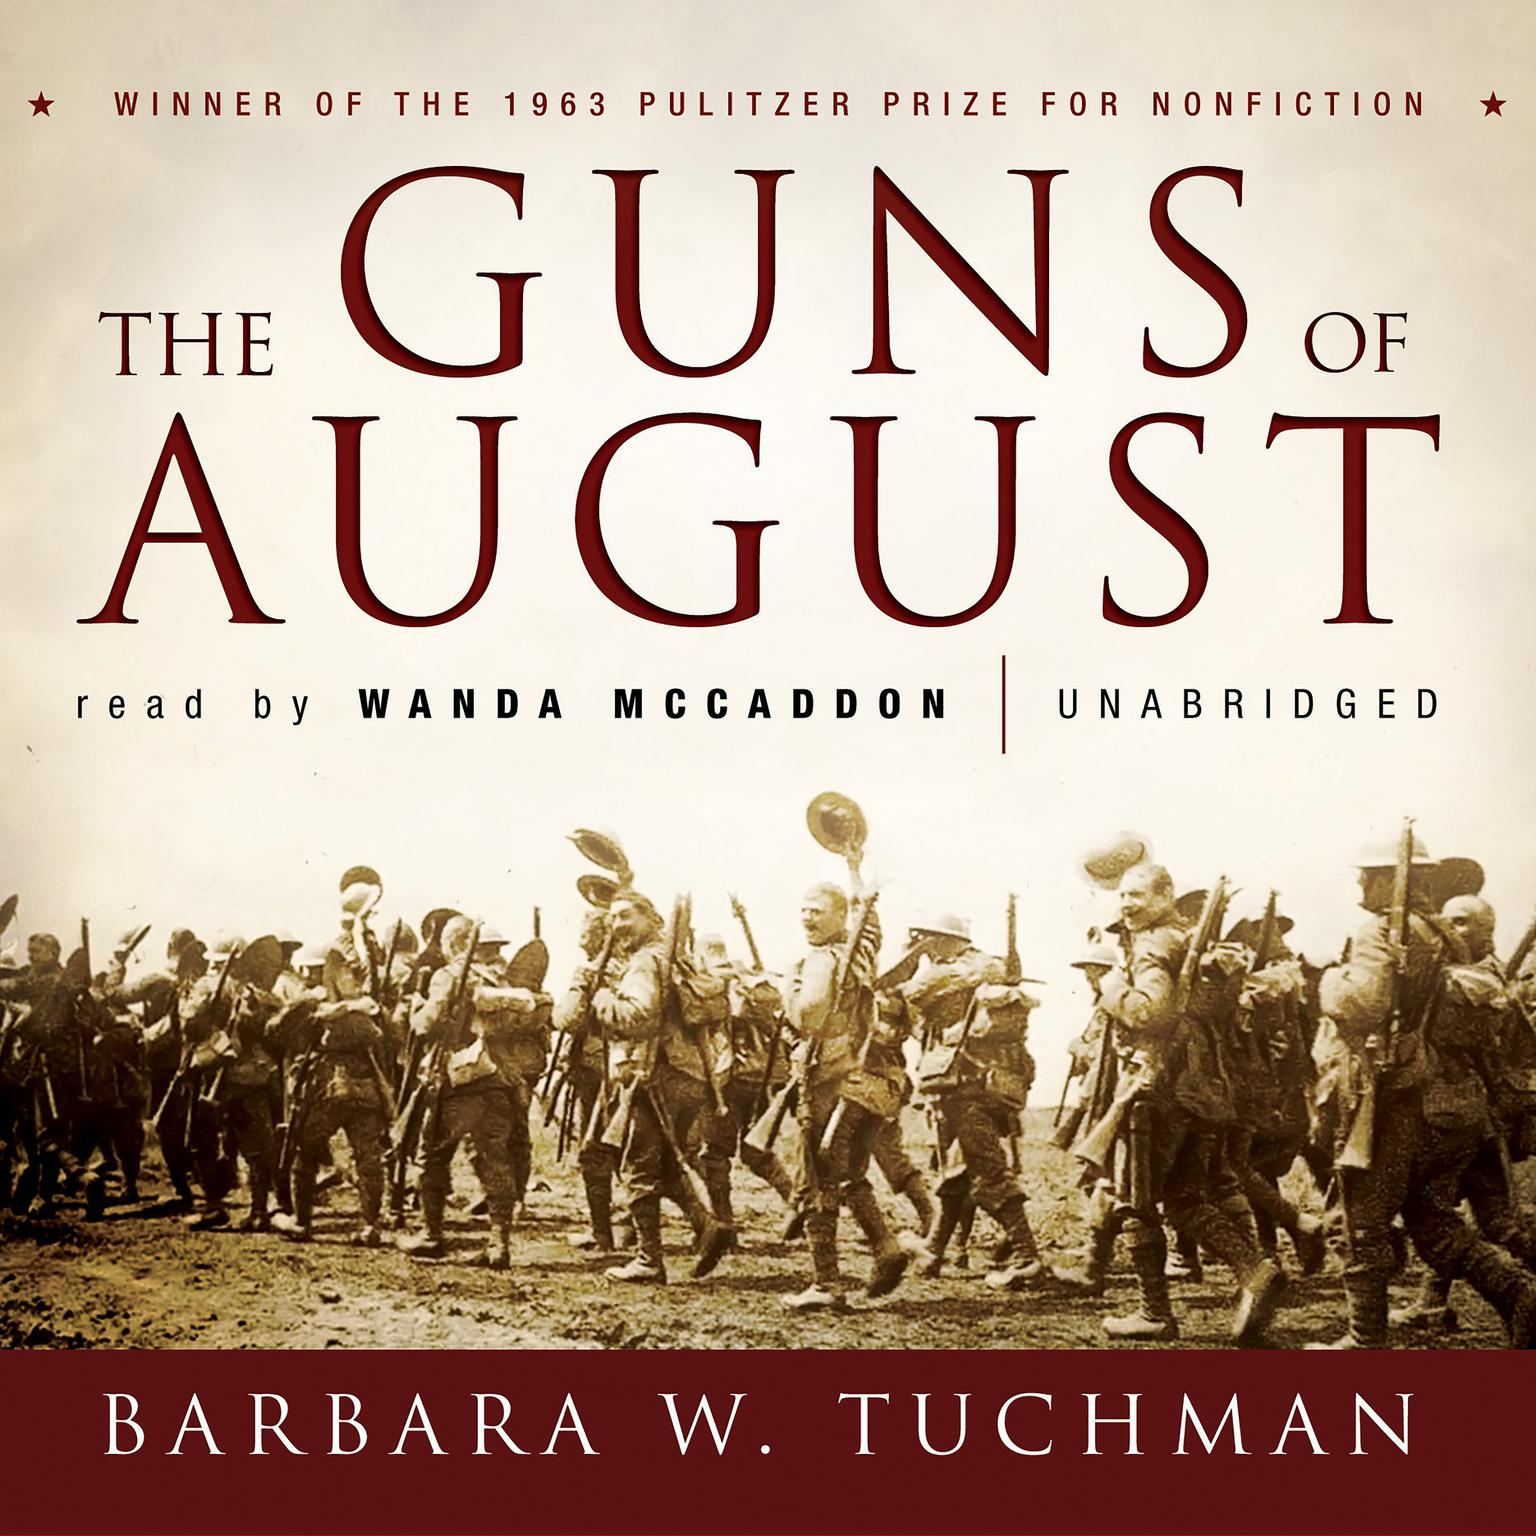 an analysis of military history in the guns of august by barbara tuchman Barbara tuchman's pulitzer prize-winning the guns of august is the  nor does  she have a military background, yet her description and analysis of the  of the  adage that the lesson of history is that nobody learns the lesson.